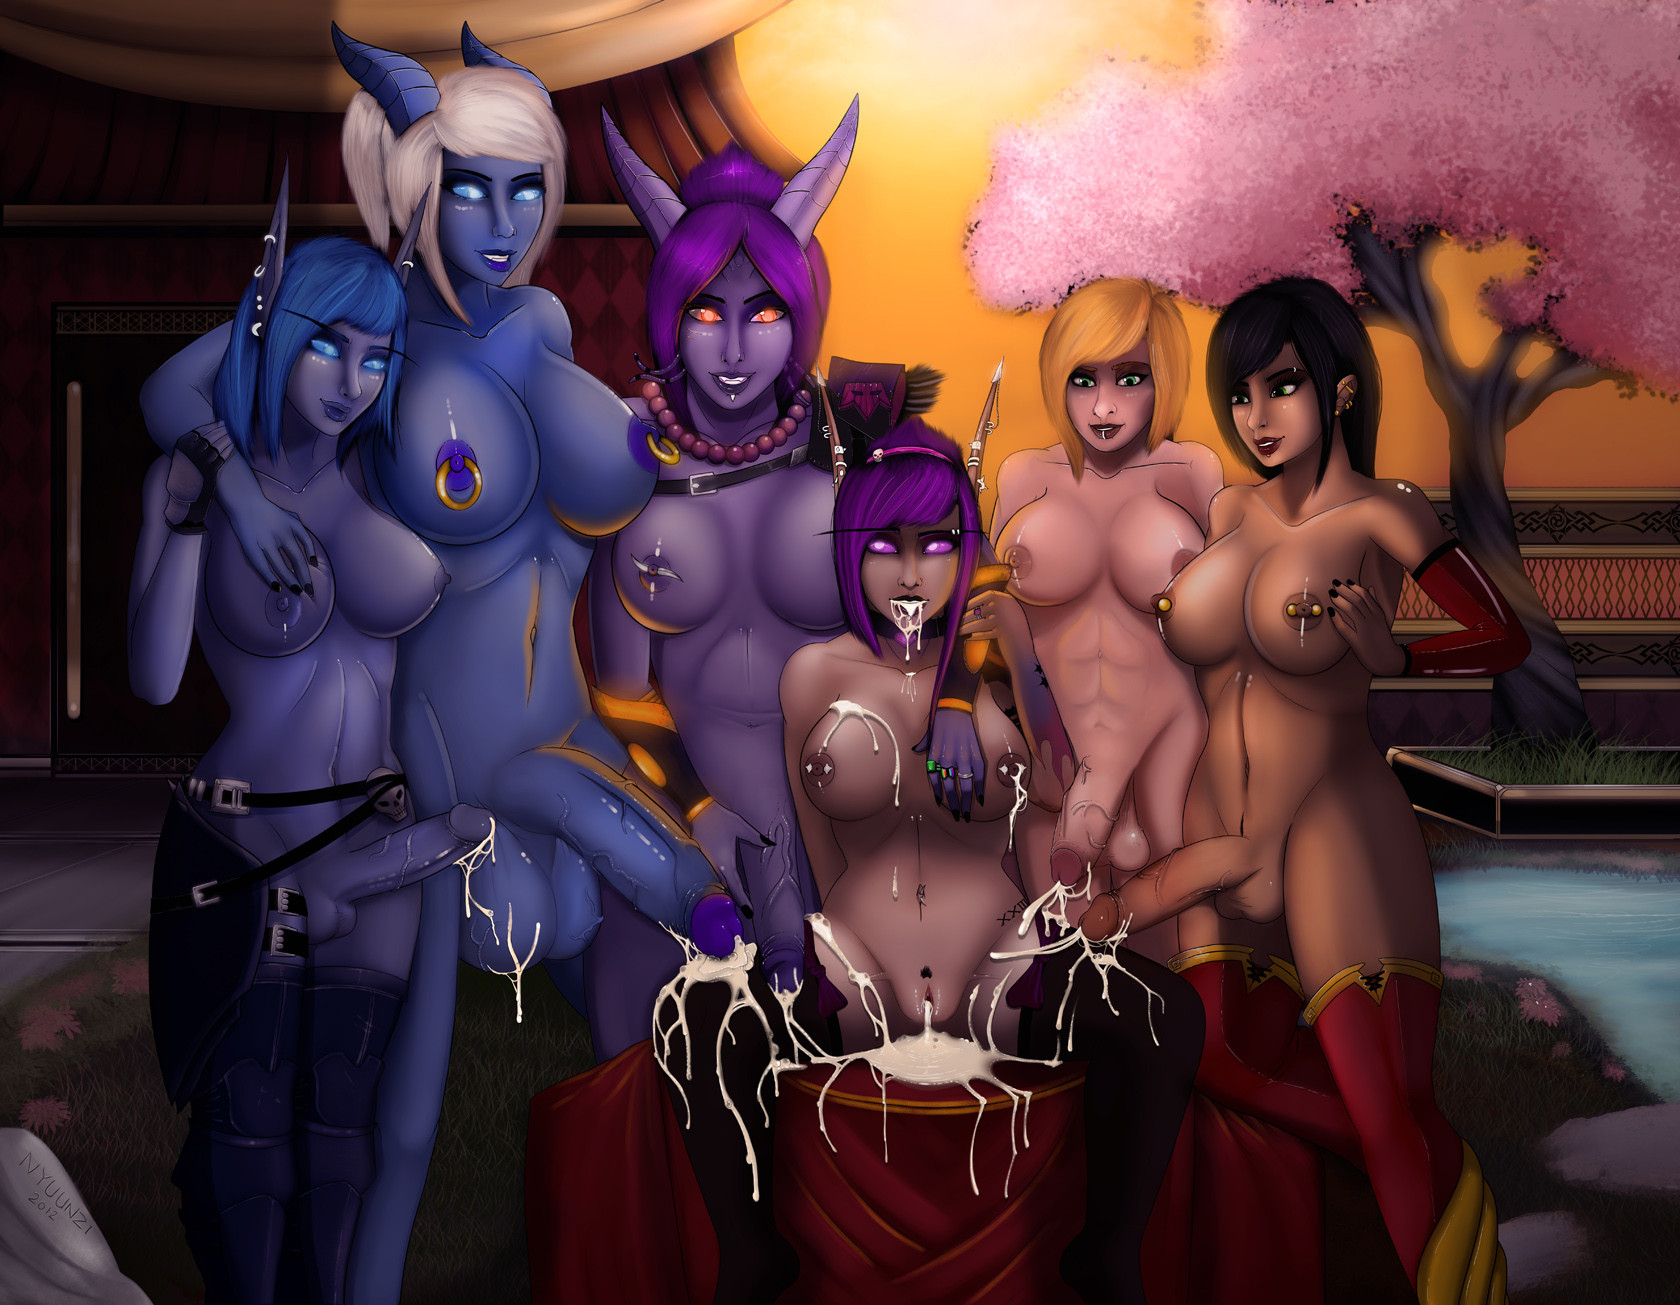 Free world of warcraft porn pic porn toons